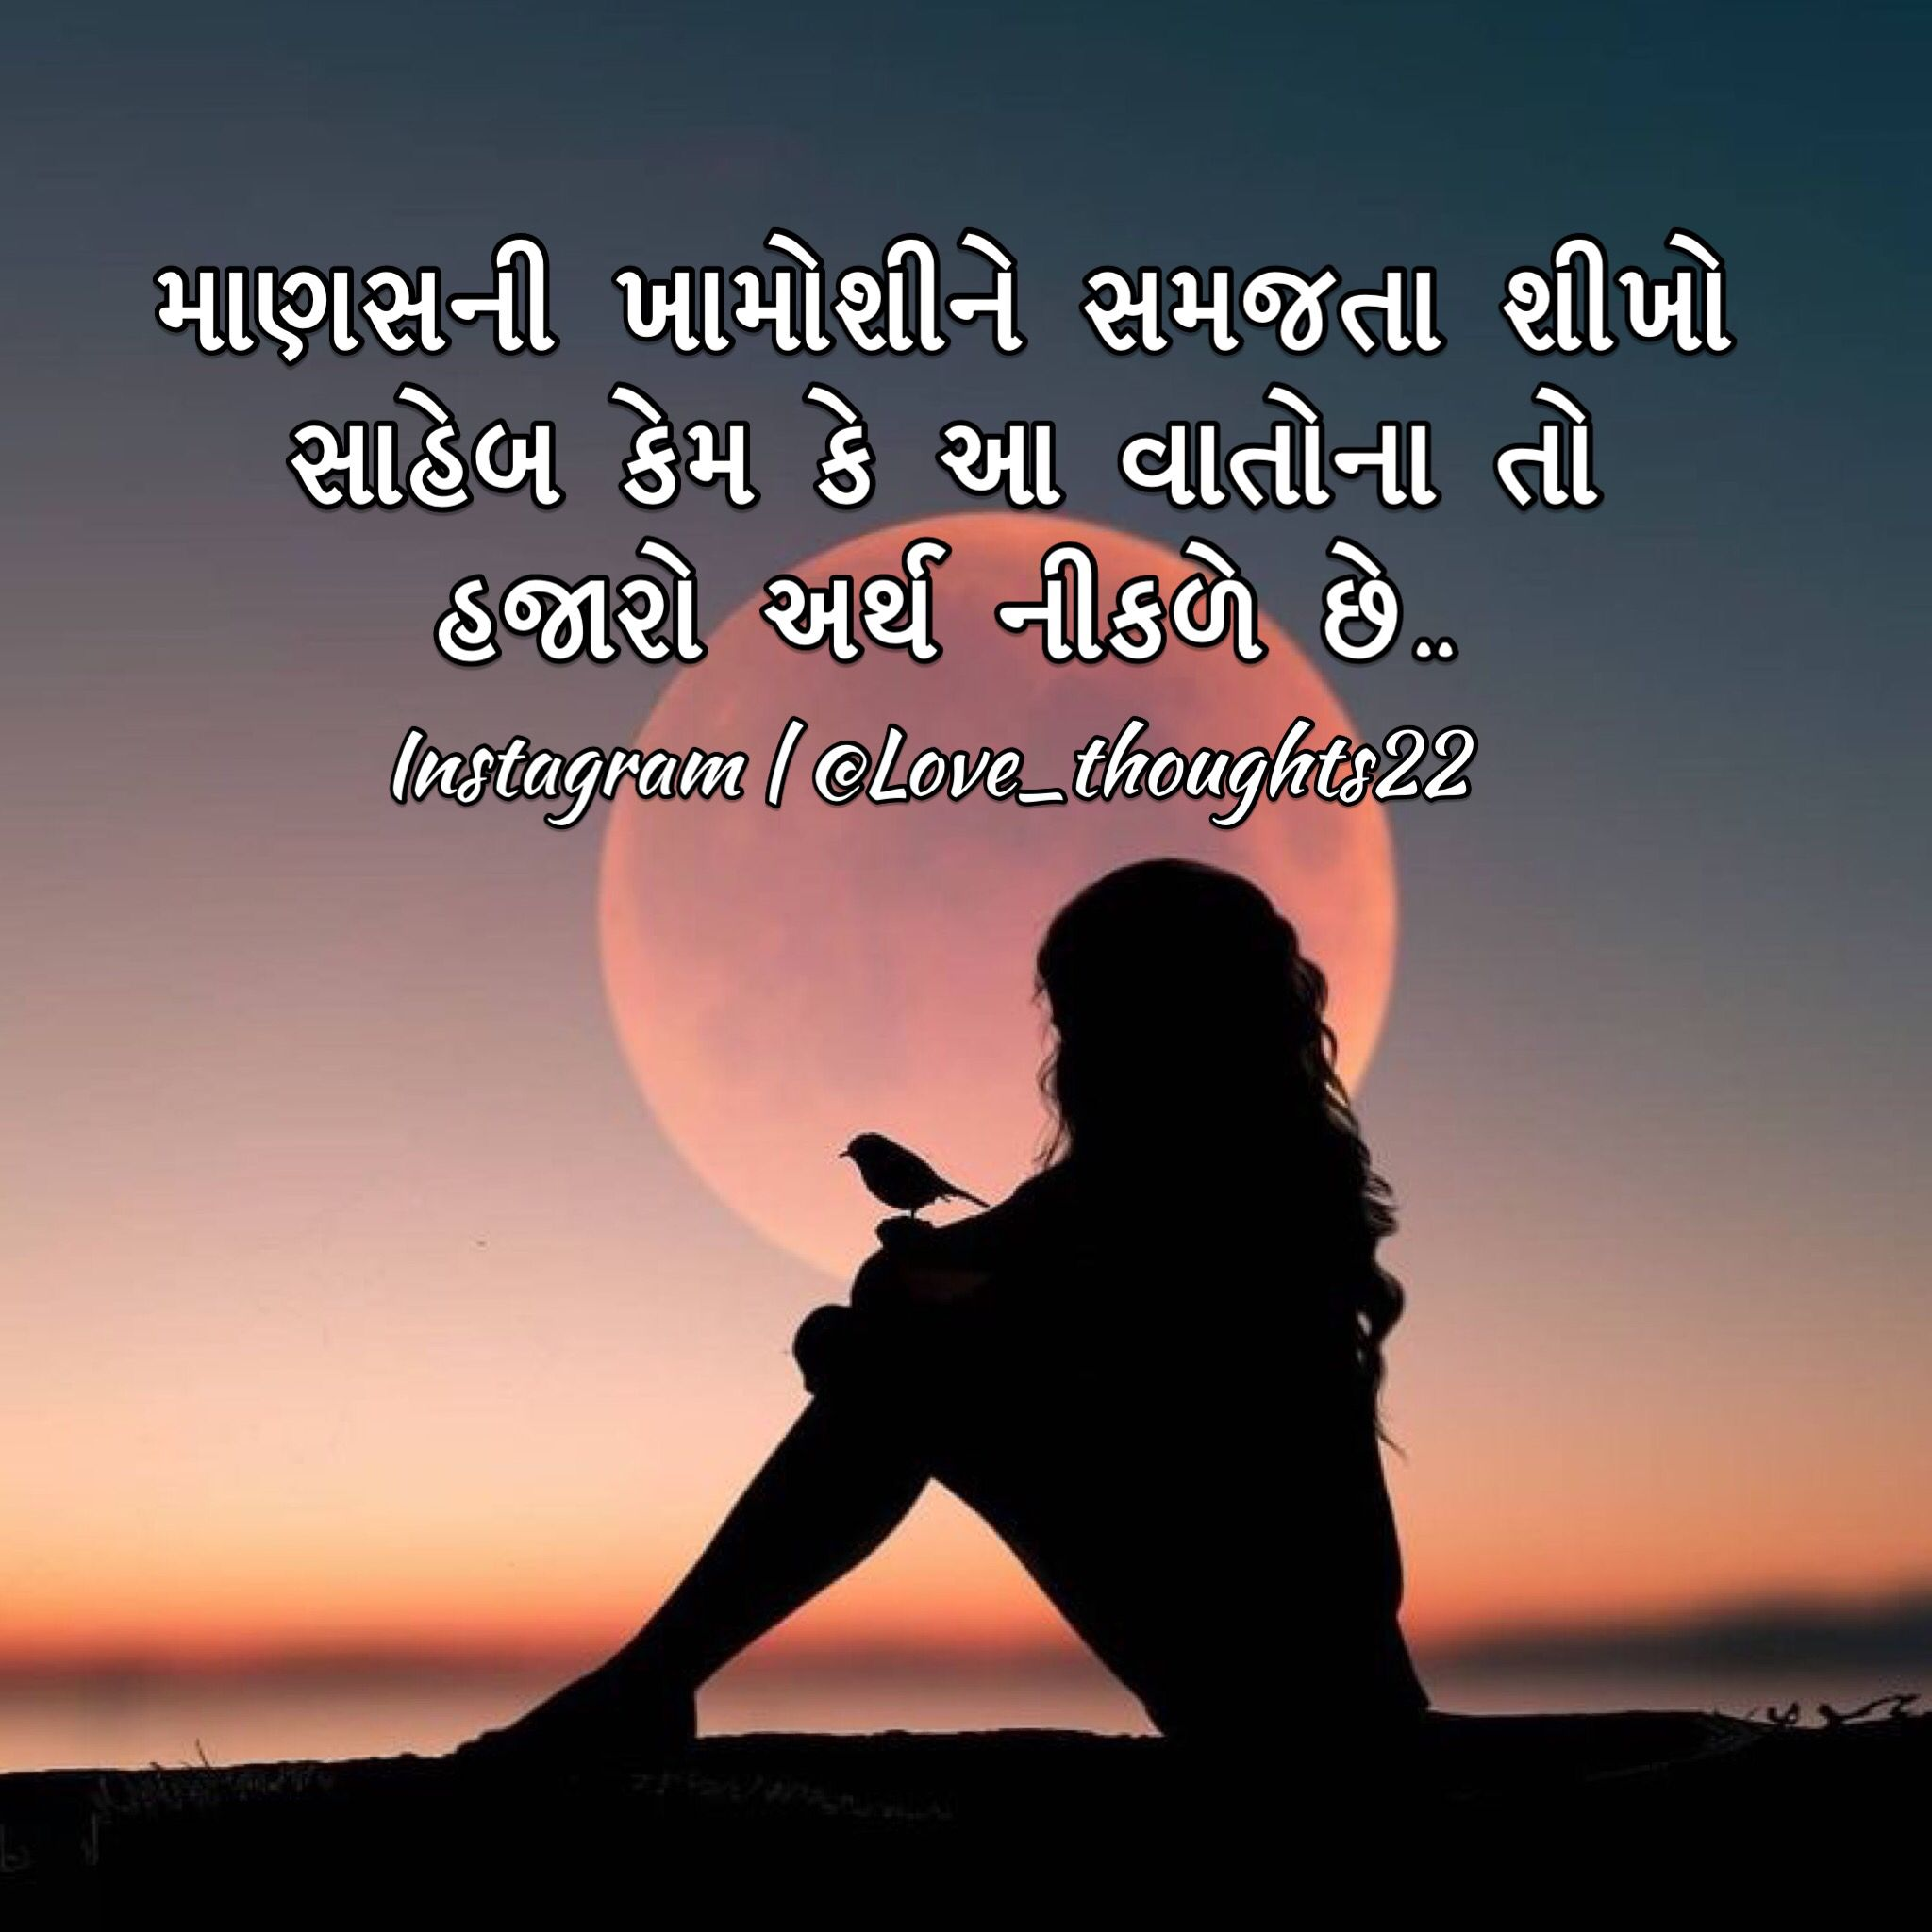 Pin by Krishan3722 on Love_thoughts22 (With images